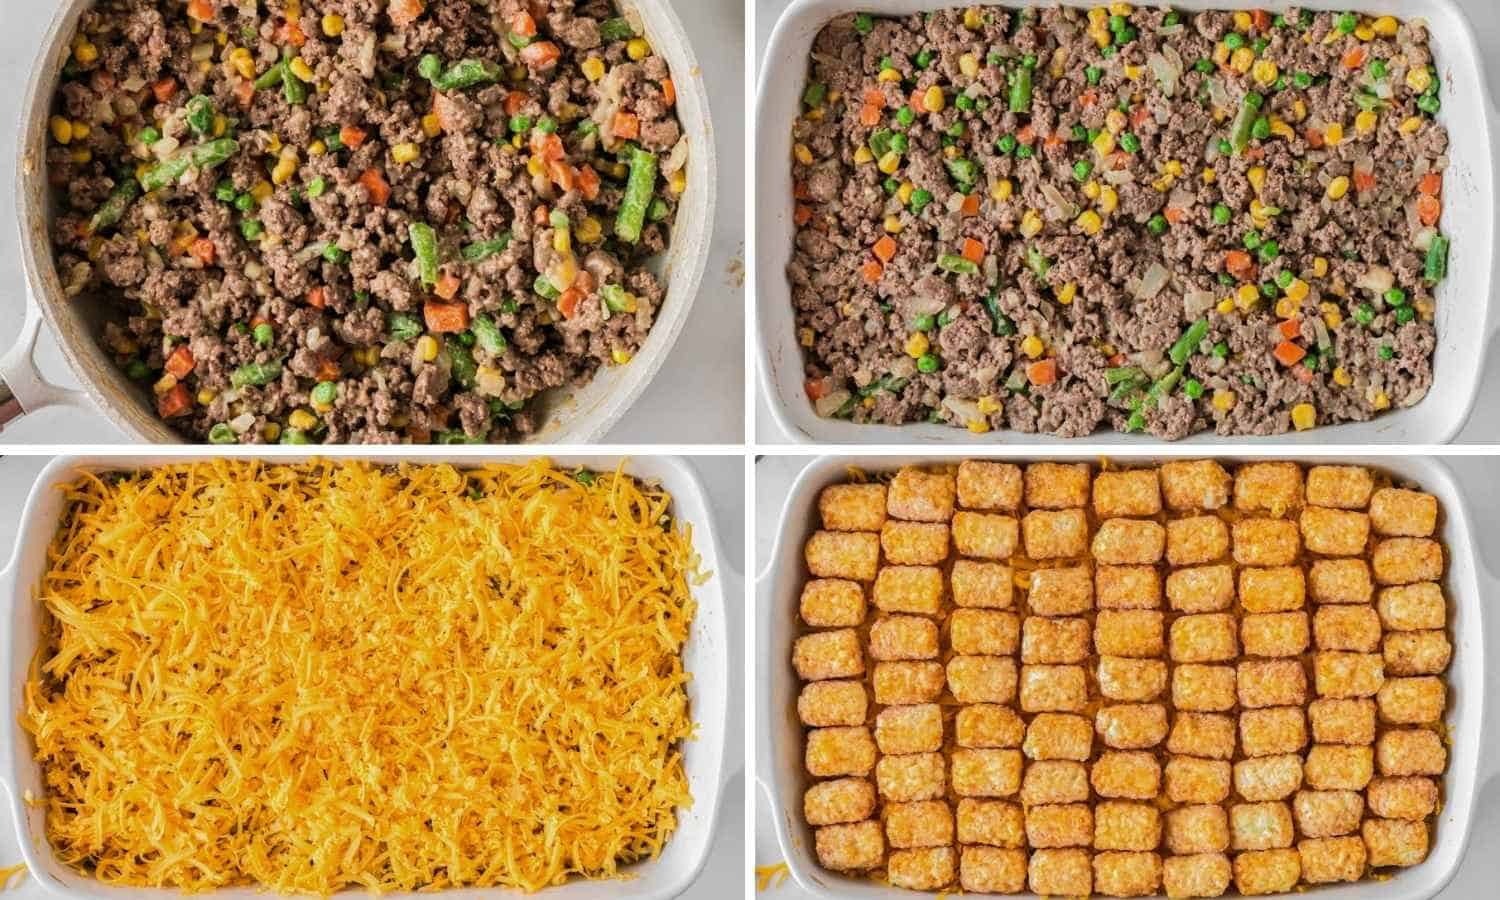 Collage with four images showing how to make the casserole filling and transfer to the casserole dish with cheese and tater tots